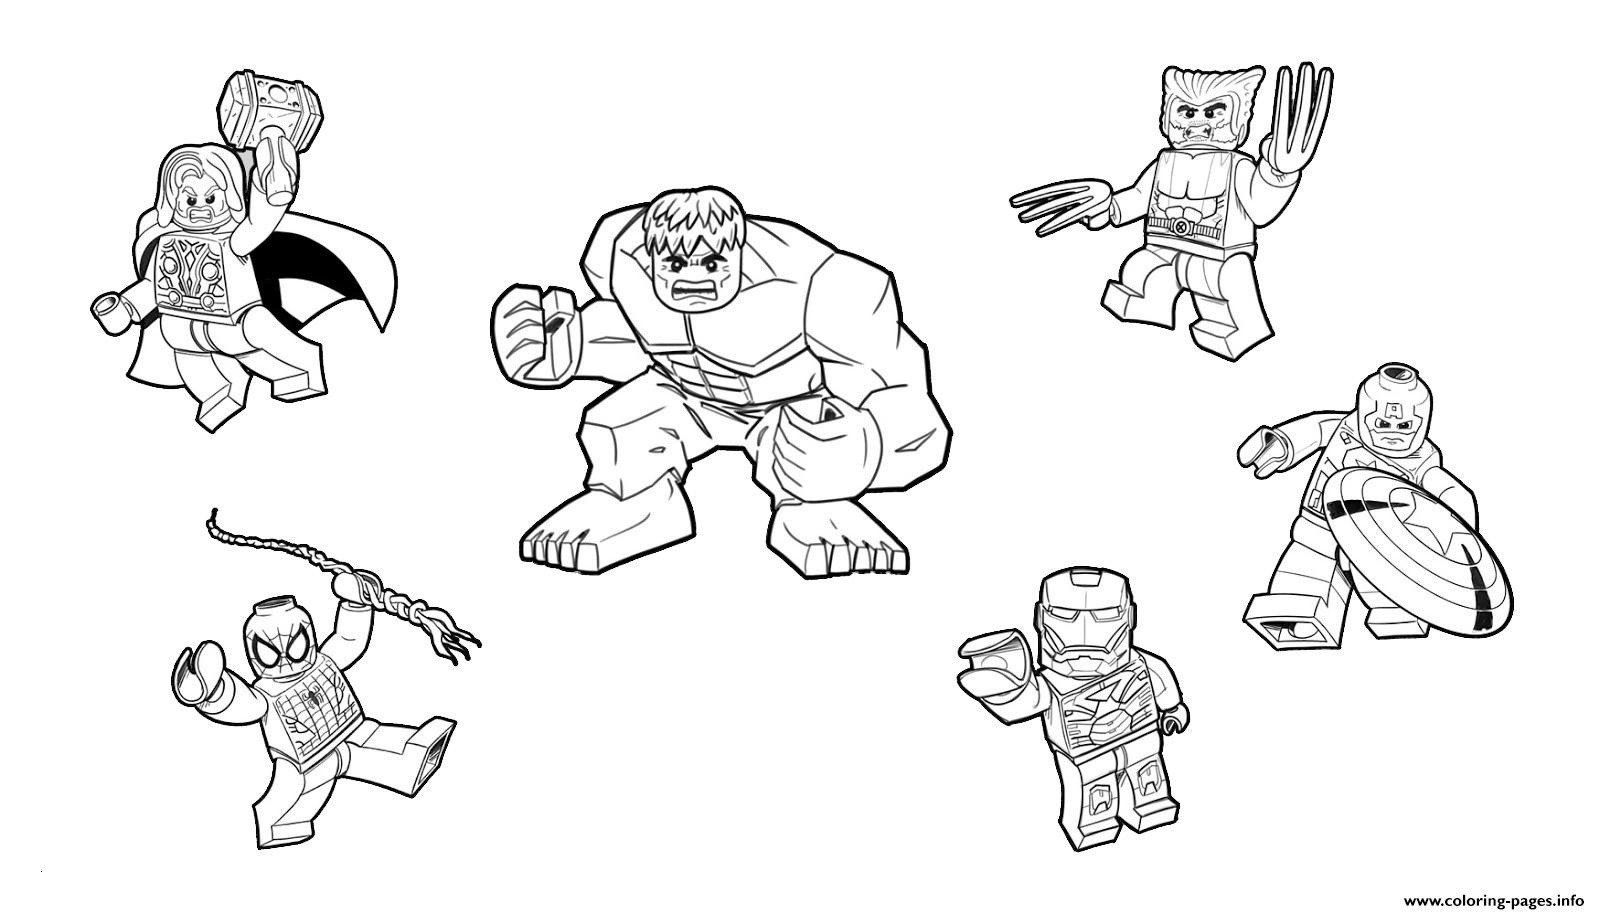 Lego Marvel Coloring Pages Lovely 21 Lego Spiderman Coloring Pages Collection Coloring Shee Superhero Coloring Pages Superhero Coloring Avengers Coloring Pages